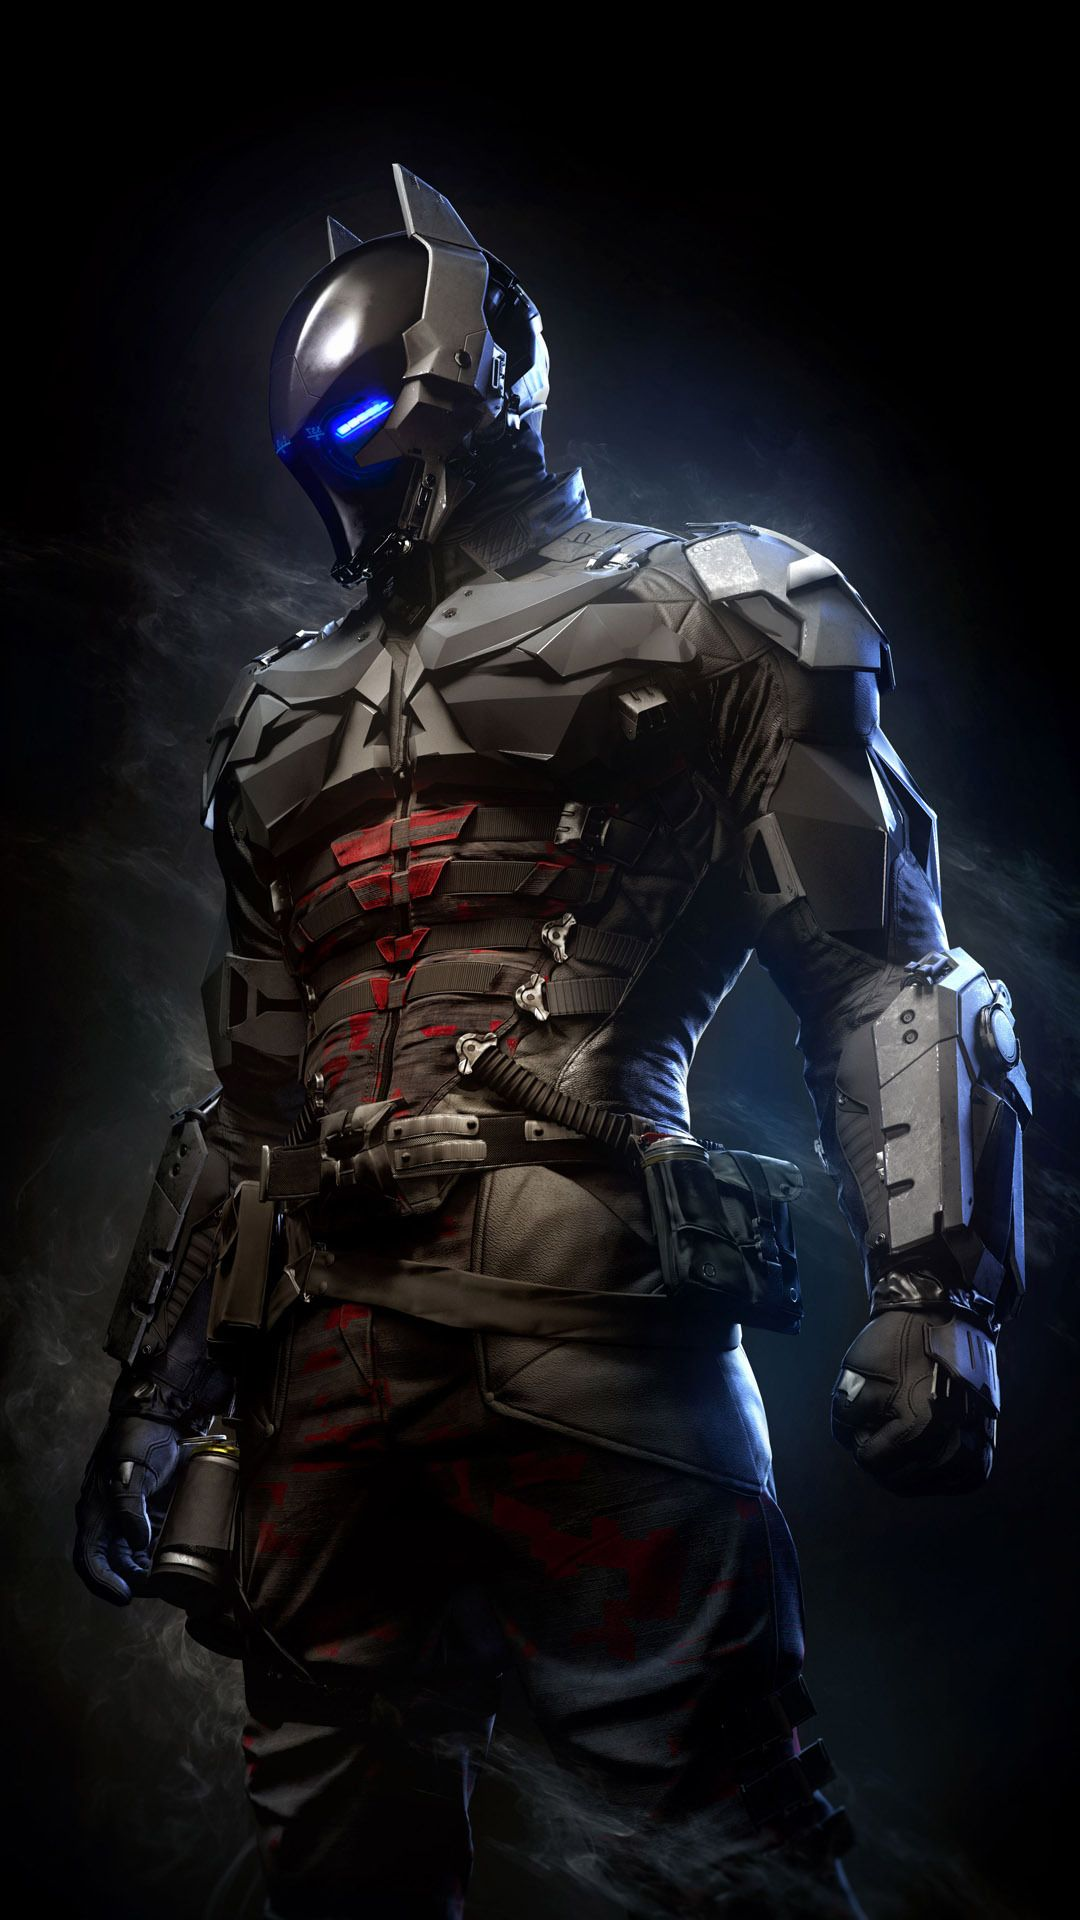 Phone Wallpaper Dump Prepare Your Data Batman Arkham Knight Wallpaper Batman Arkham Knight Game Batman